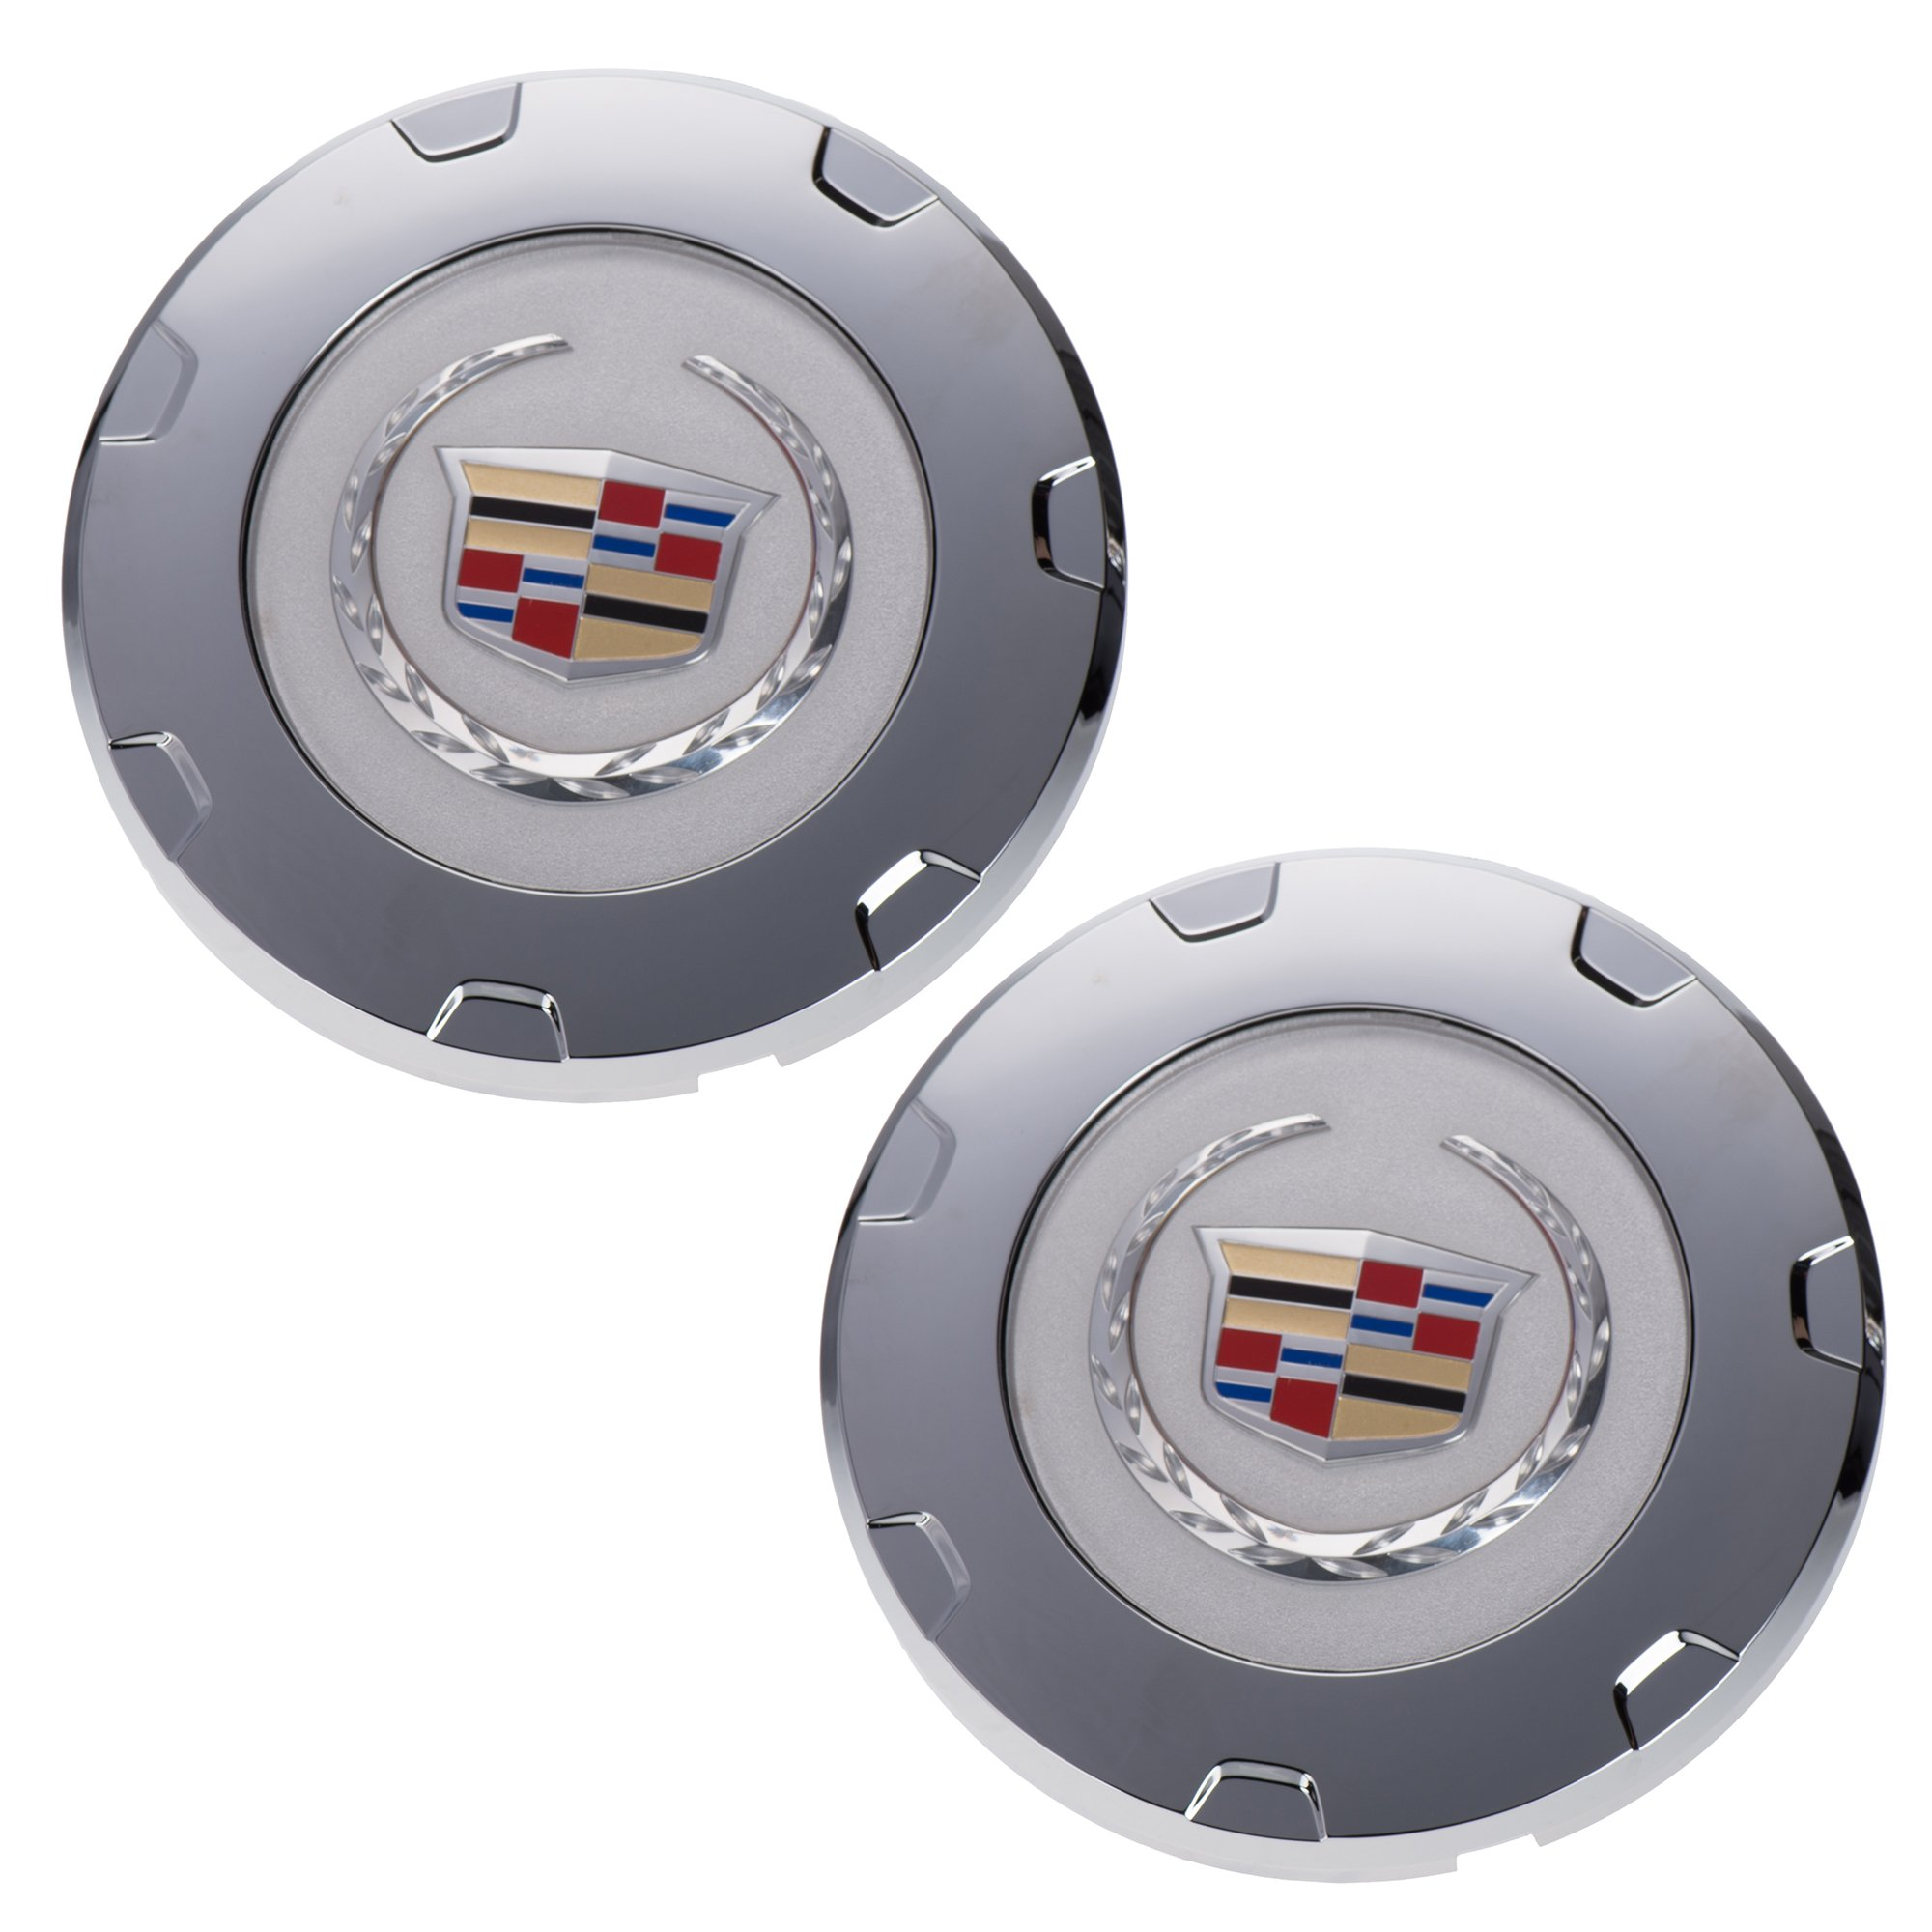 OEM NEW Wheel Center Cap Set of 2 Chrome w/Wreath & Crest 09-14 Escalade 9598677